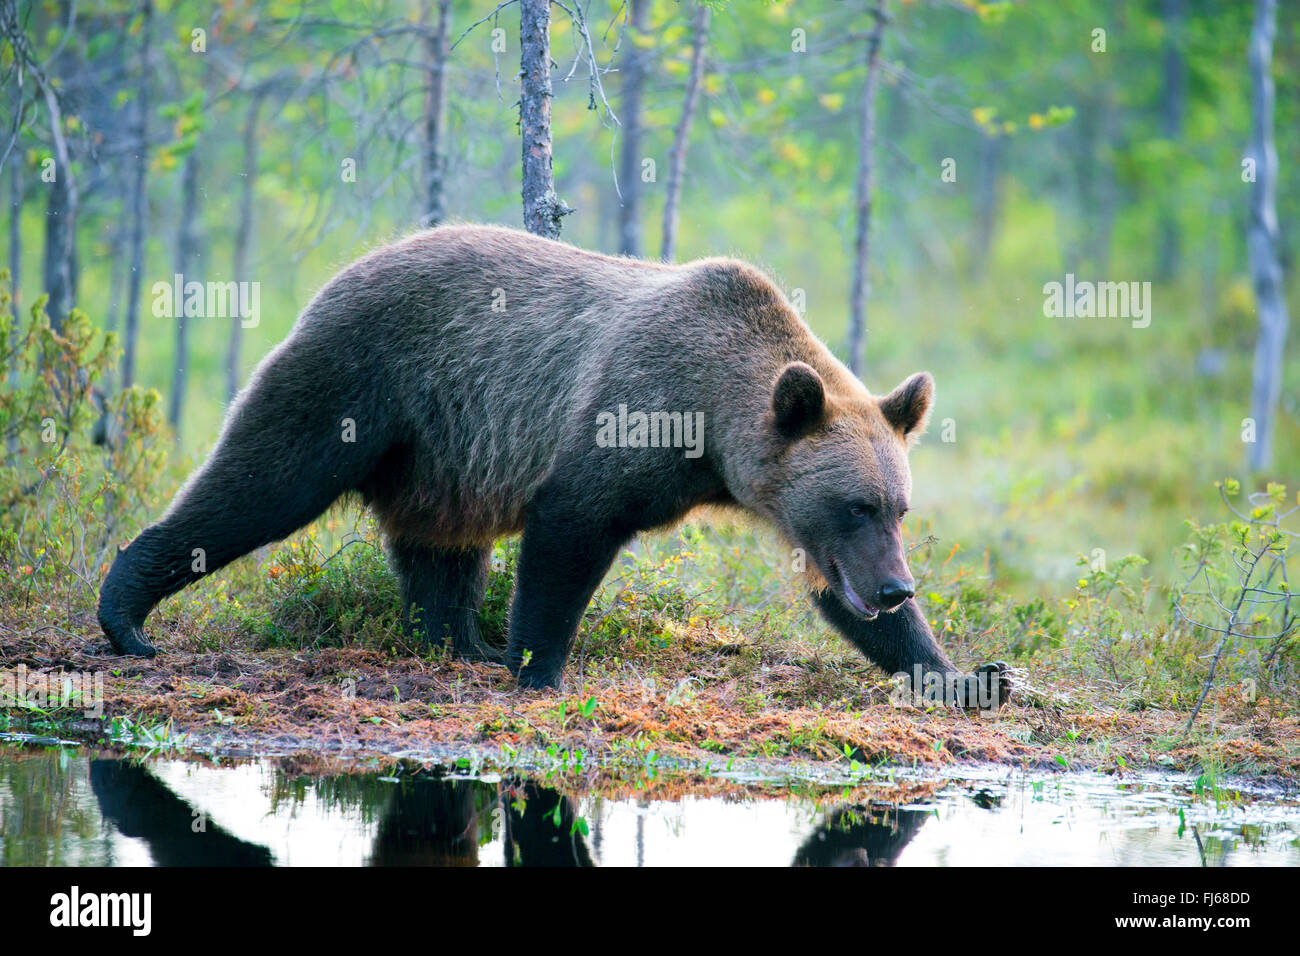 European brown bear (Ursus arctos arctos), walking on the lakefront in a forest, Finland, Kajaani Region Kuhmo, - Stock Image